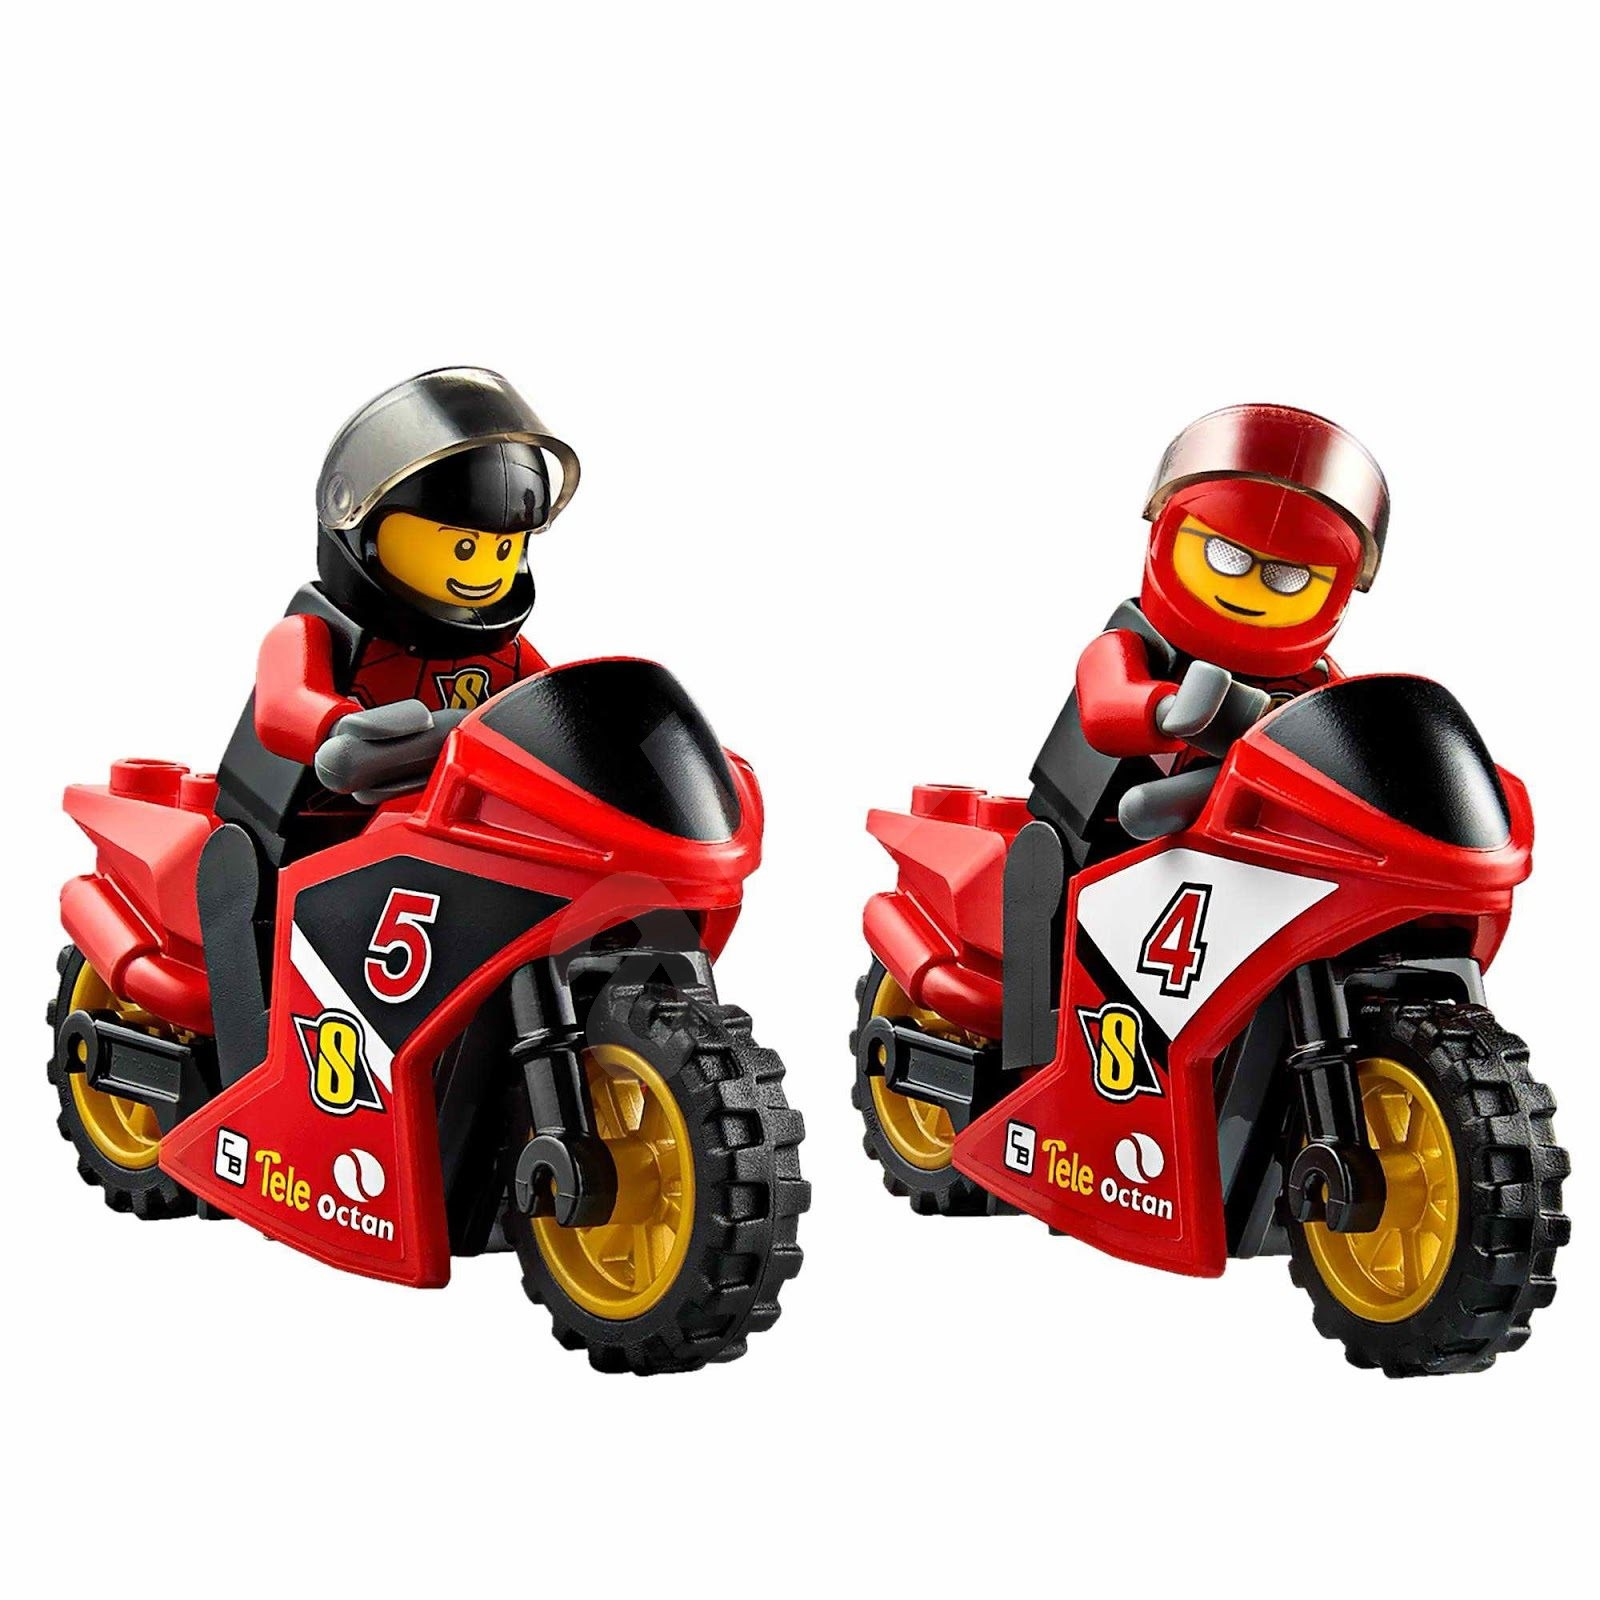 Lego City 60084 Great Vehicle Transportation Truck Racing Bikes D2293391 on Latest Writing On The Wall 3